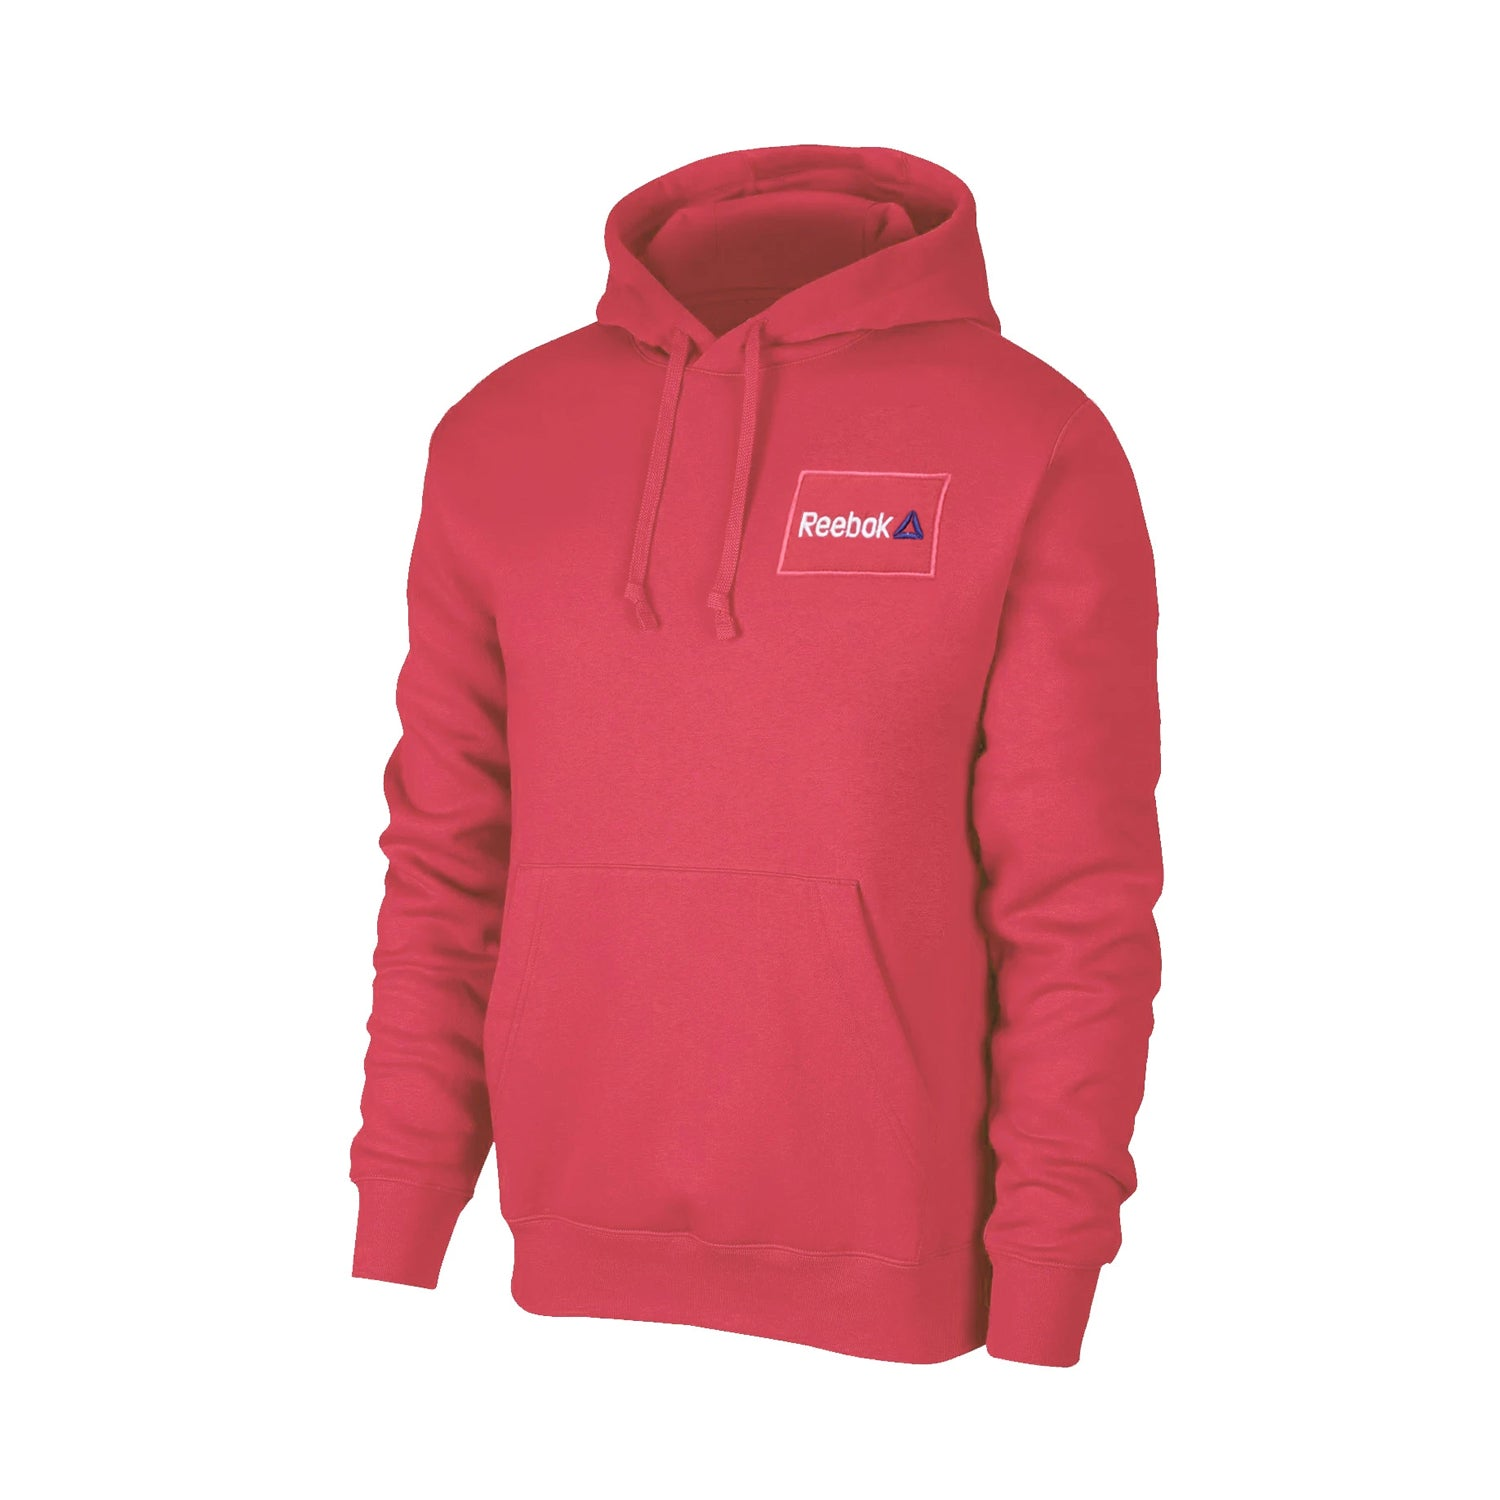 Reebok Fleece Pullover Hoodie For Men-Coral Pink with White Embroidery-BE13473